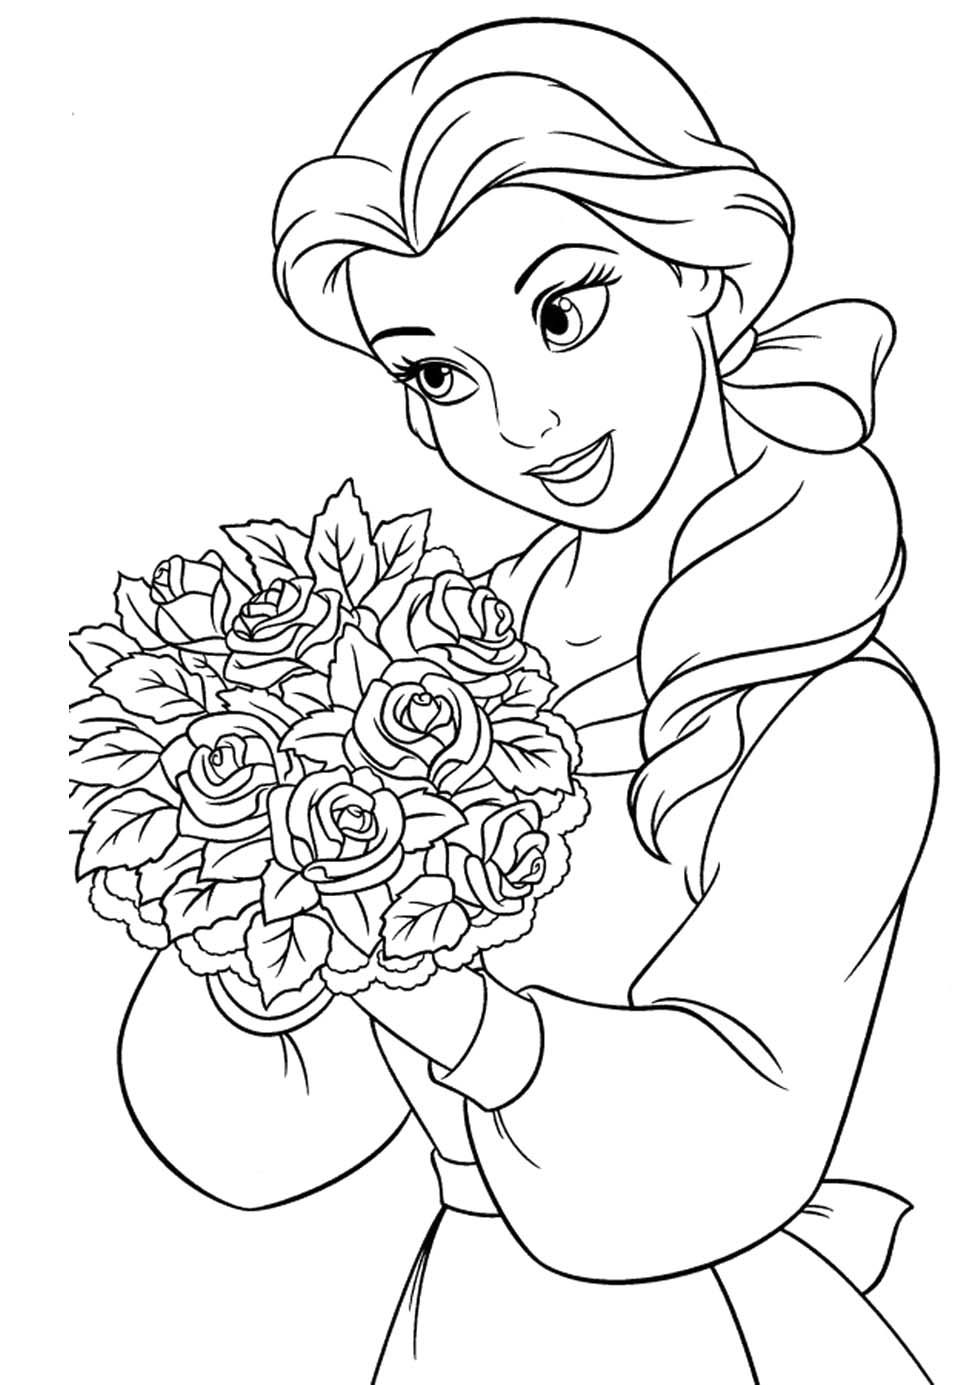 coloring pages of princess belle princess belle coloring pages coloring home princess pages belle coloring of